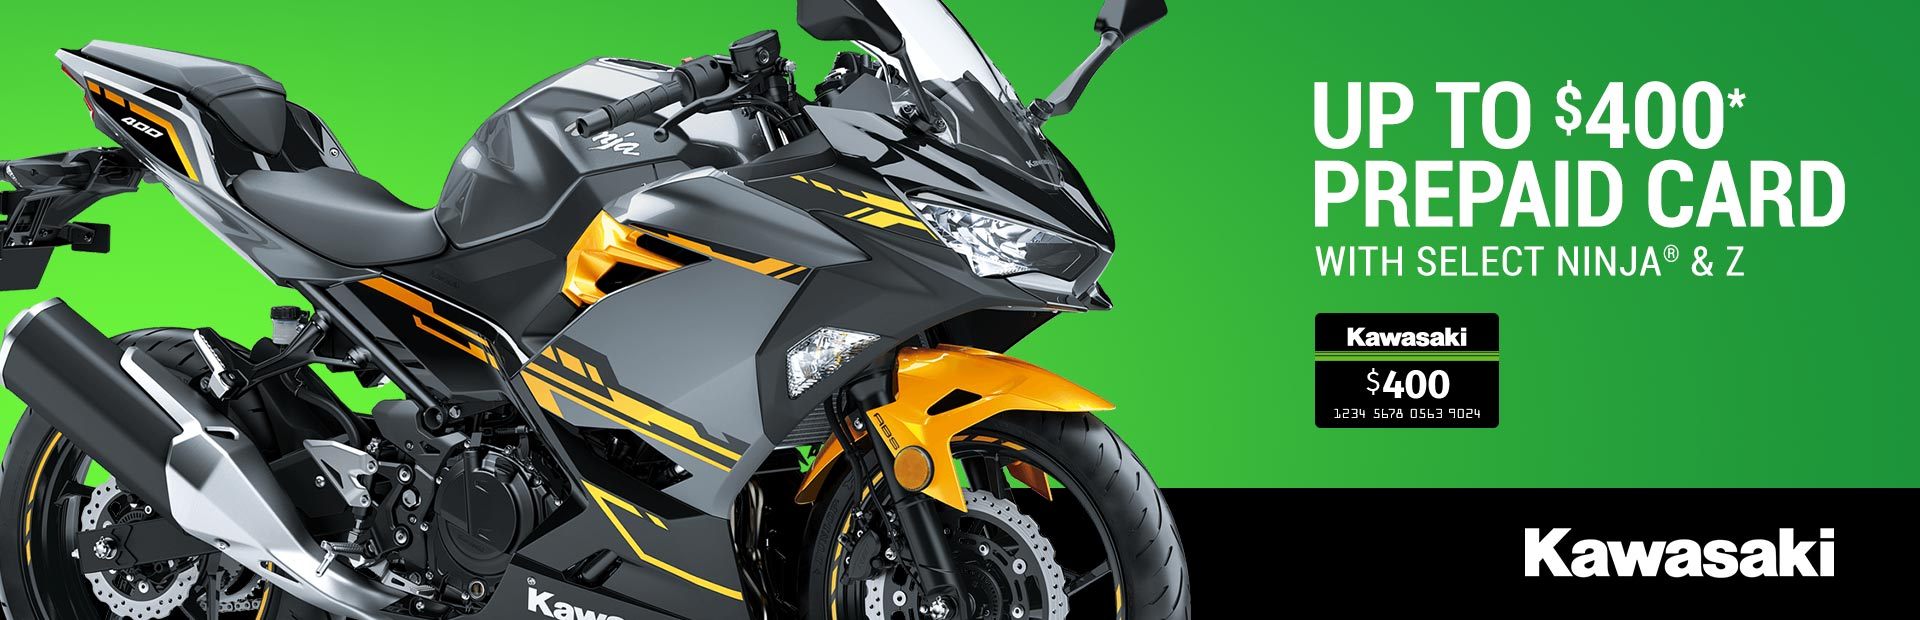 Kawasaki: Up to $400* Prepaid Card with Select Ninja® & Z